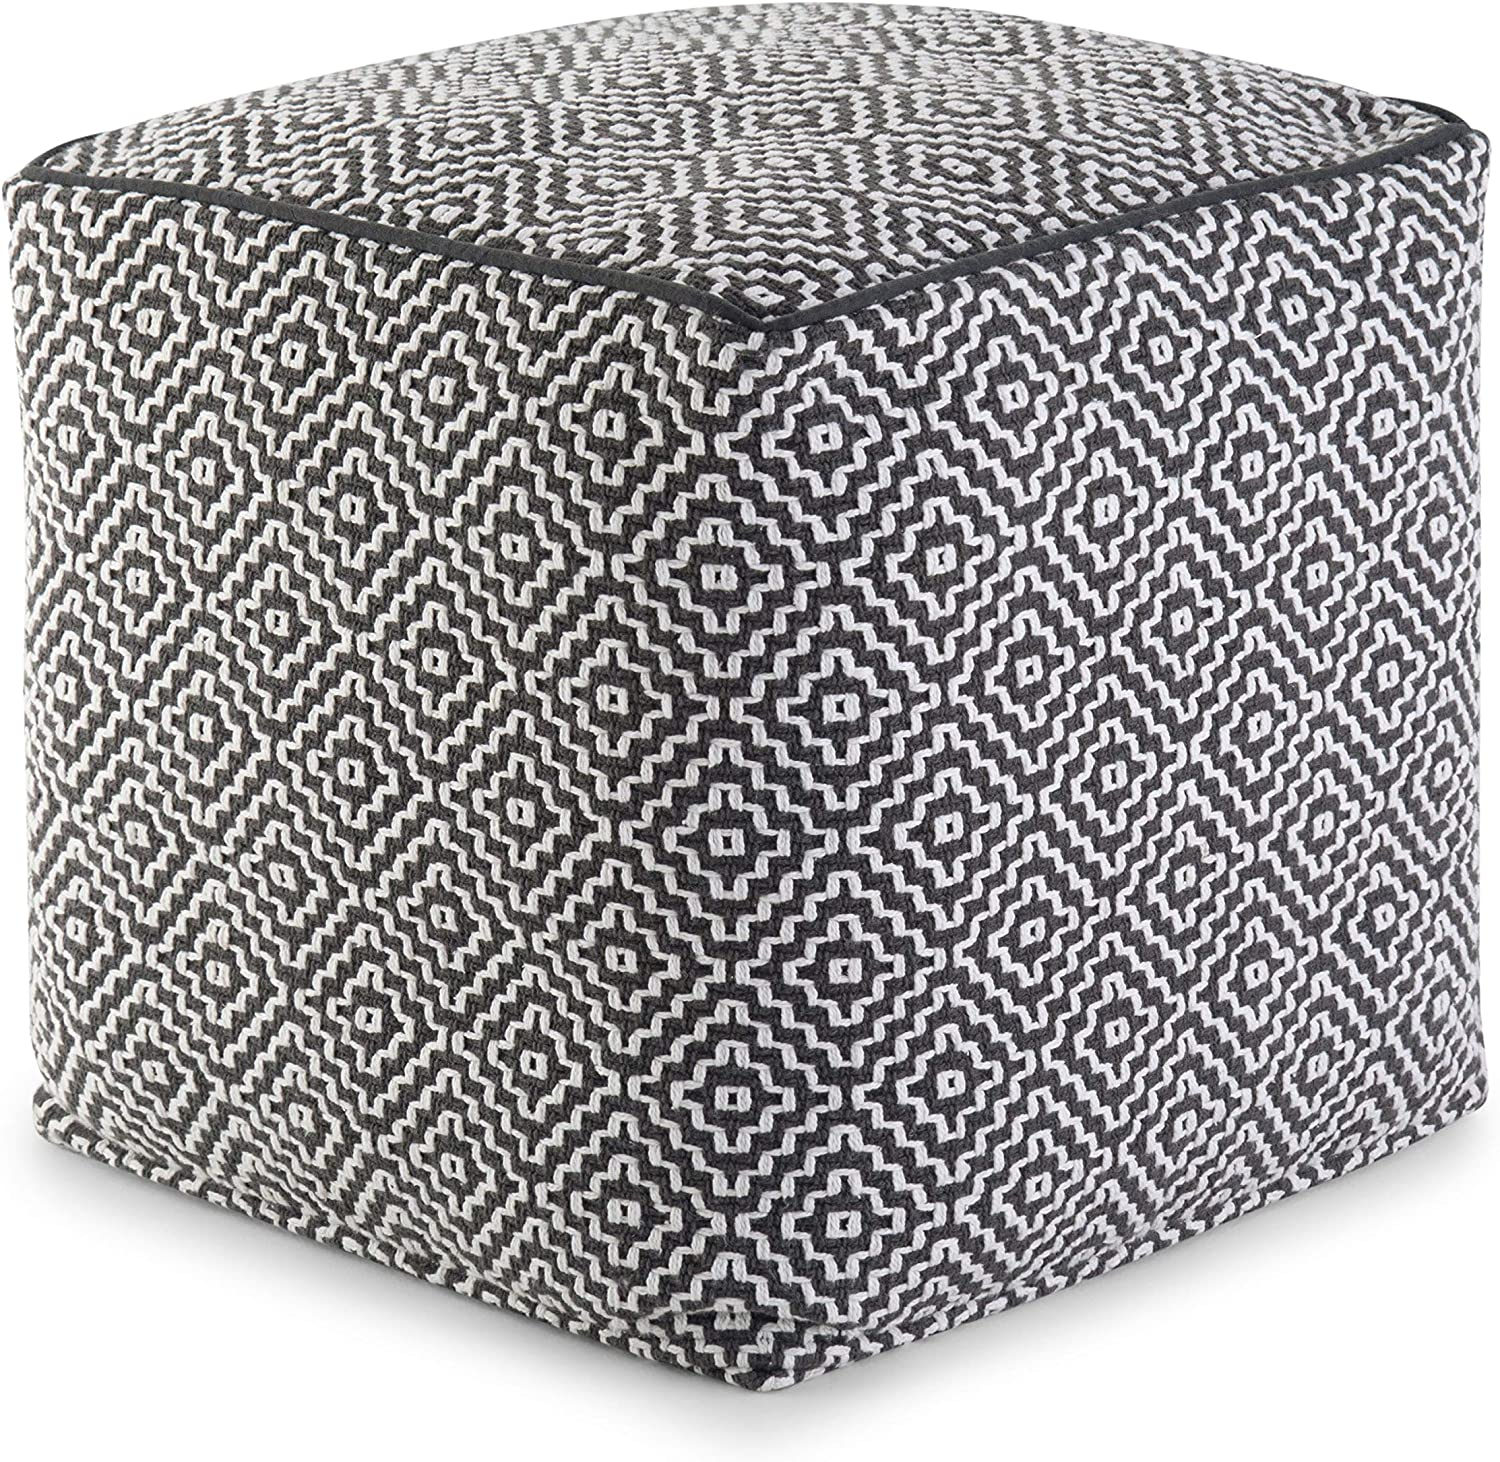 SIMPLIHOME Colsen Square Pouf, Footstool, Upholstered in Blue, White Patterned Hand Woven Cotton, for the Living Room, Bedroom and Kids Room, Transitional, Modern